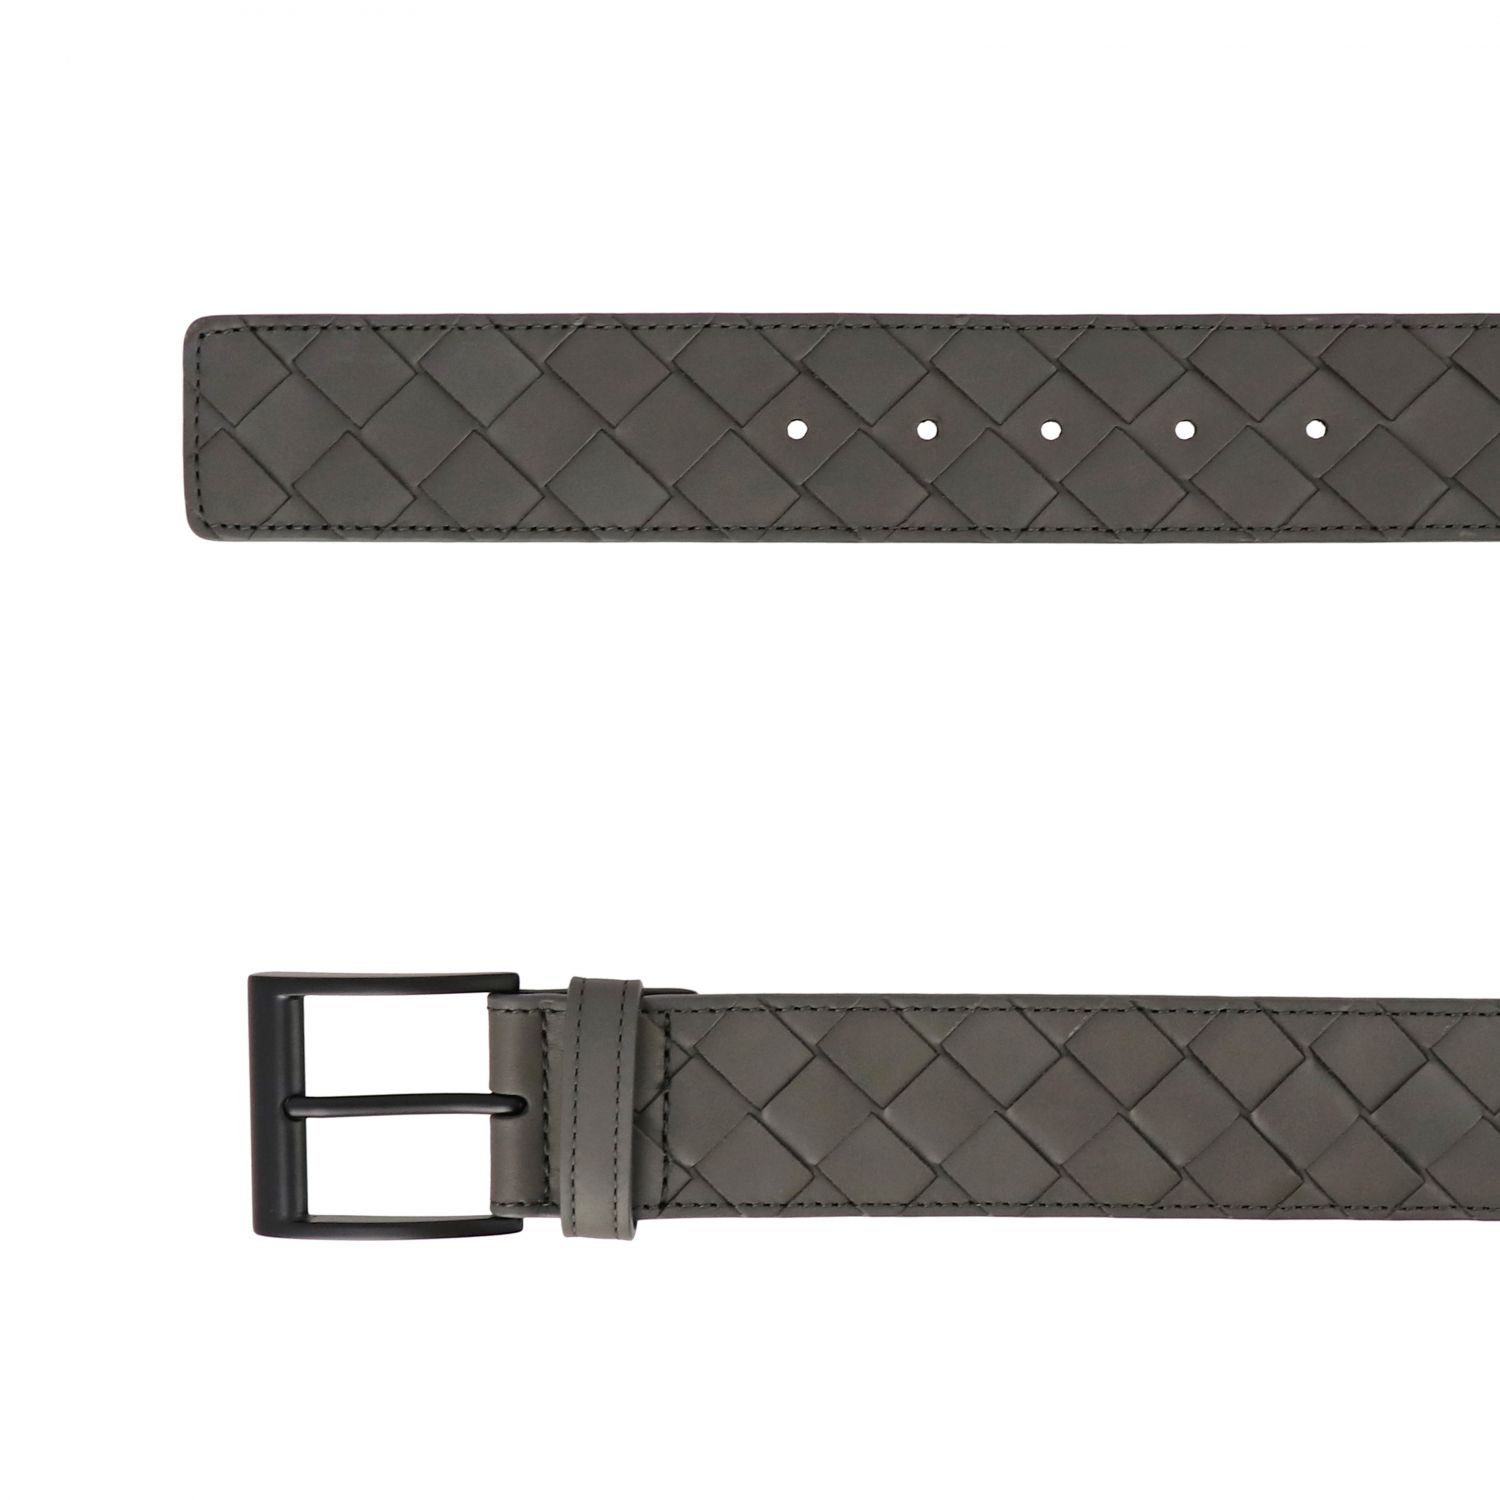 Belt Bottega Veneta: Bottega Veneta belt in woven leather grey 2